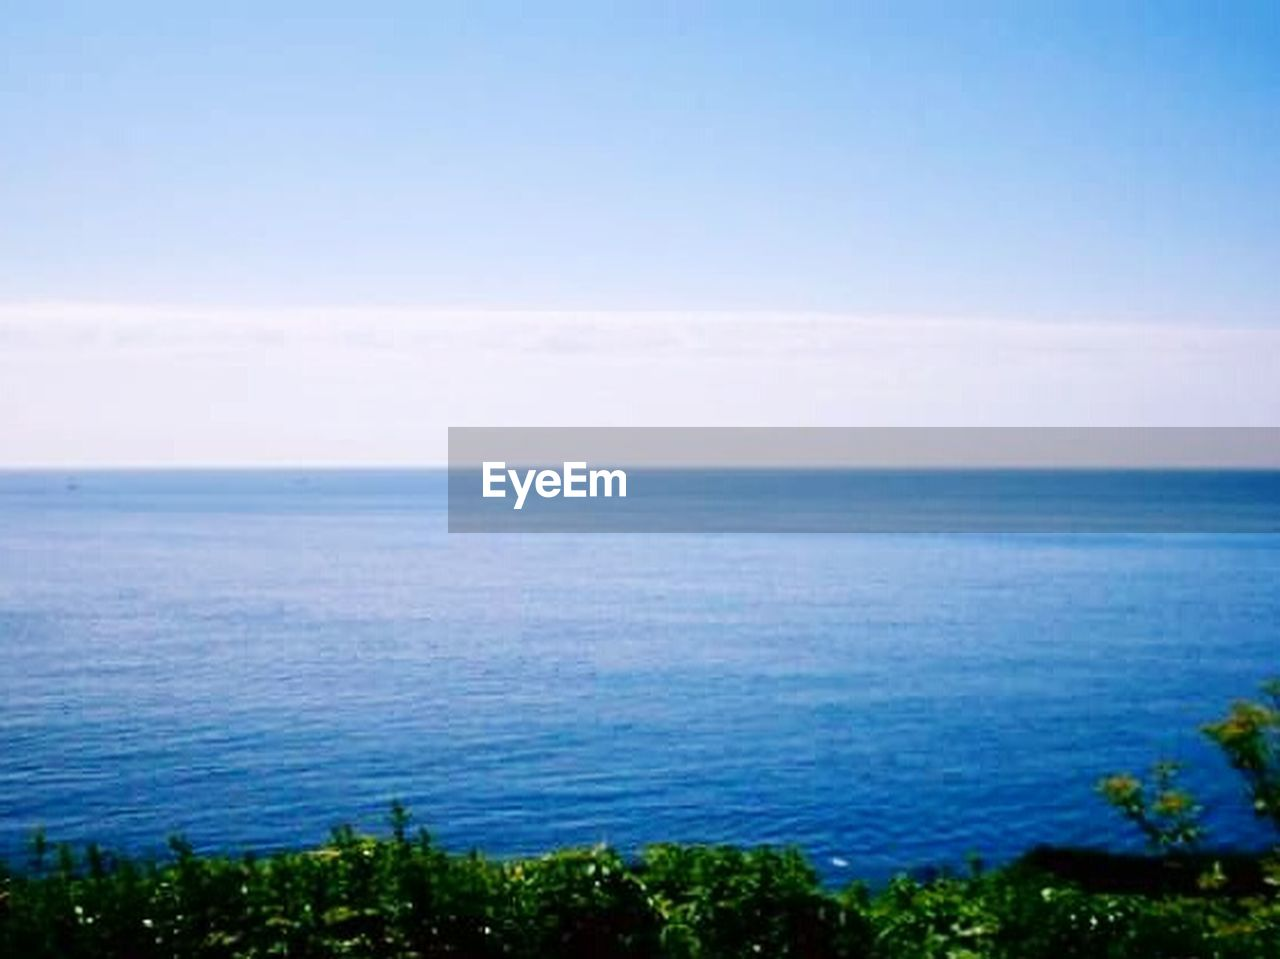 sea, horizon over water, nature, scenics, tranquil scene, sky, blue, water, tranquility, no people, outdoors, beauty in nature, day, cloud - sky, horizon, beach